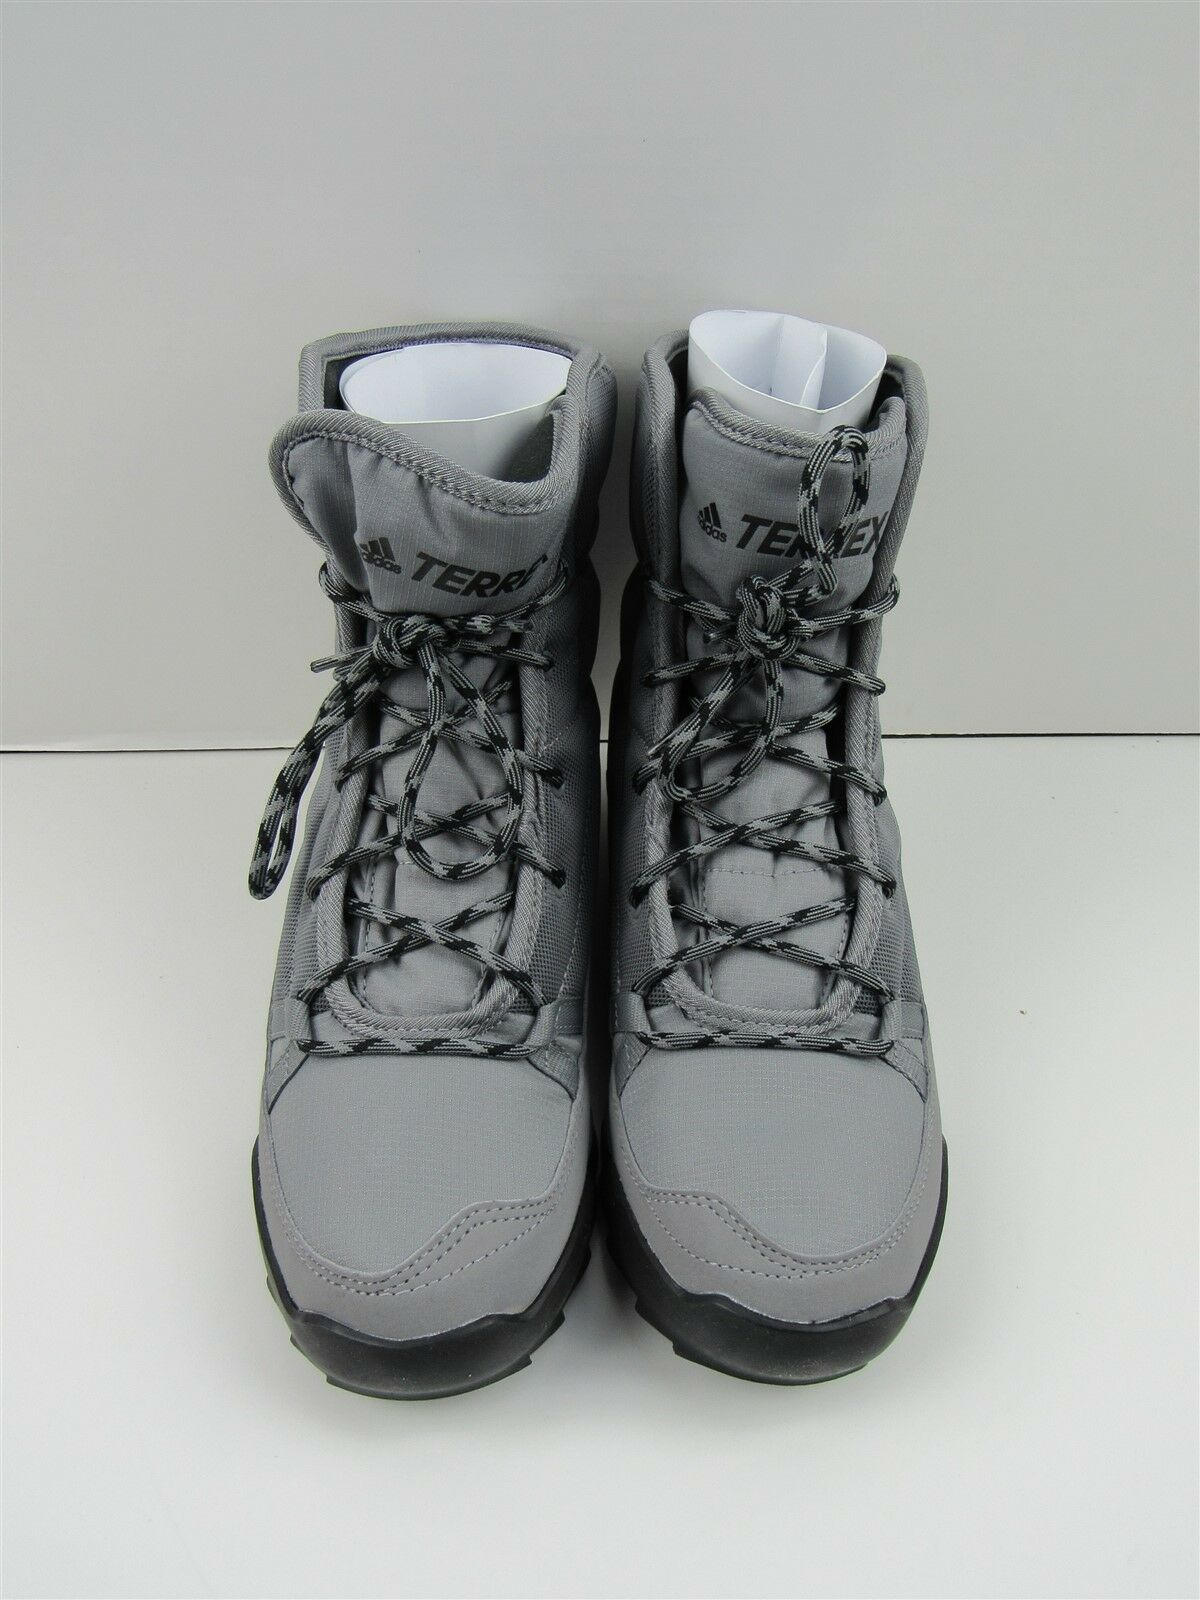 Adidas Outdoor Women's Choleah Padded CP Insulated Boots -  Size 7 Medium  free shipping & exchanges.